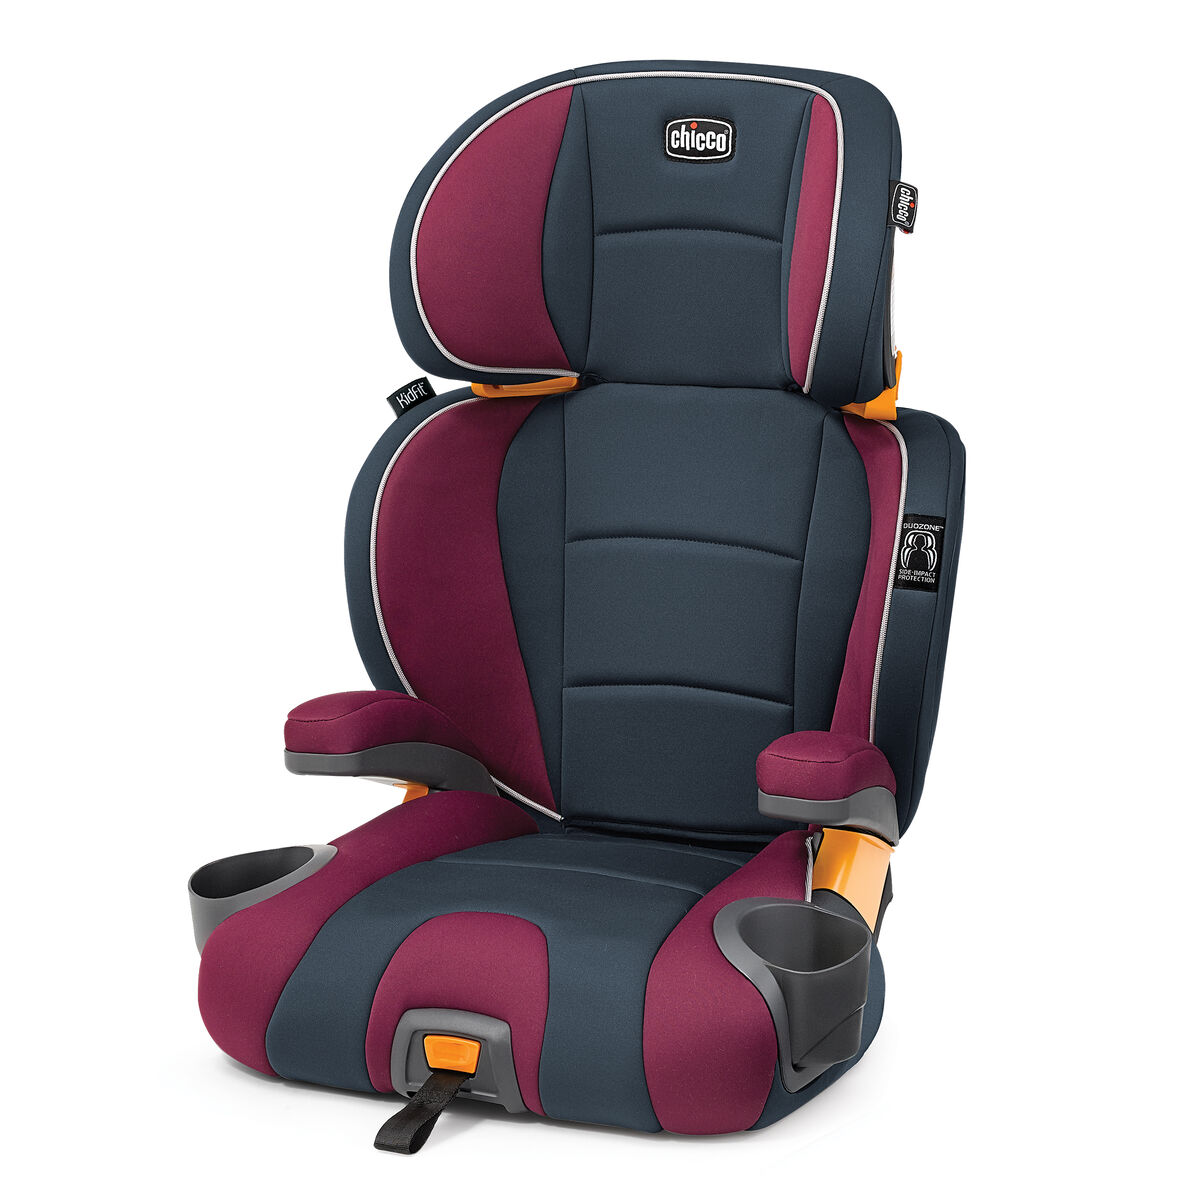 Kidfit 2 In1 Belt Positioning Booster Seat Amethyst